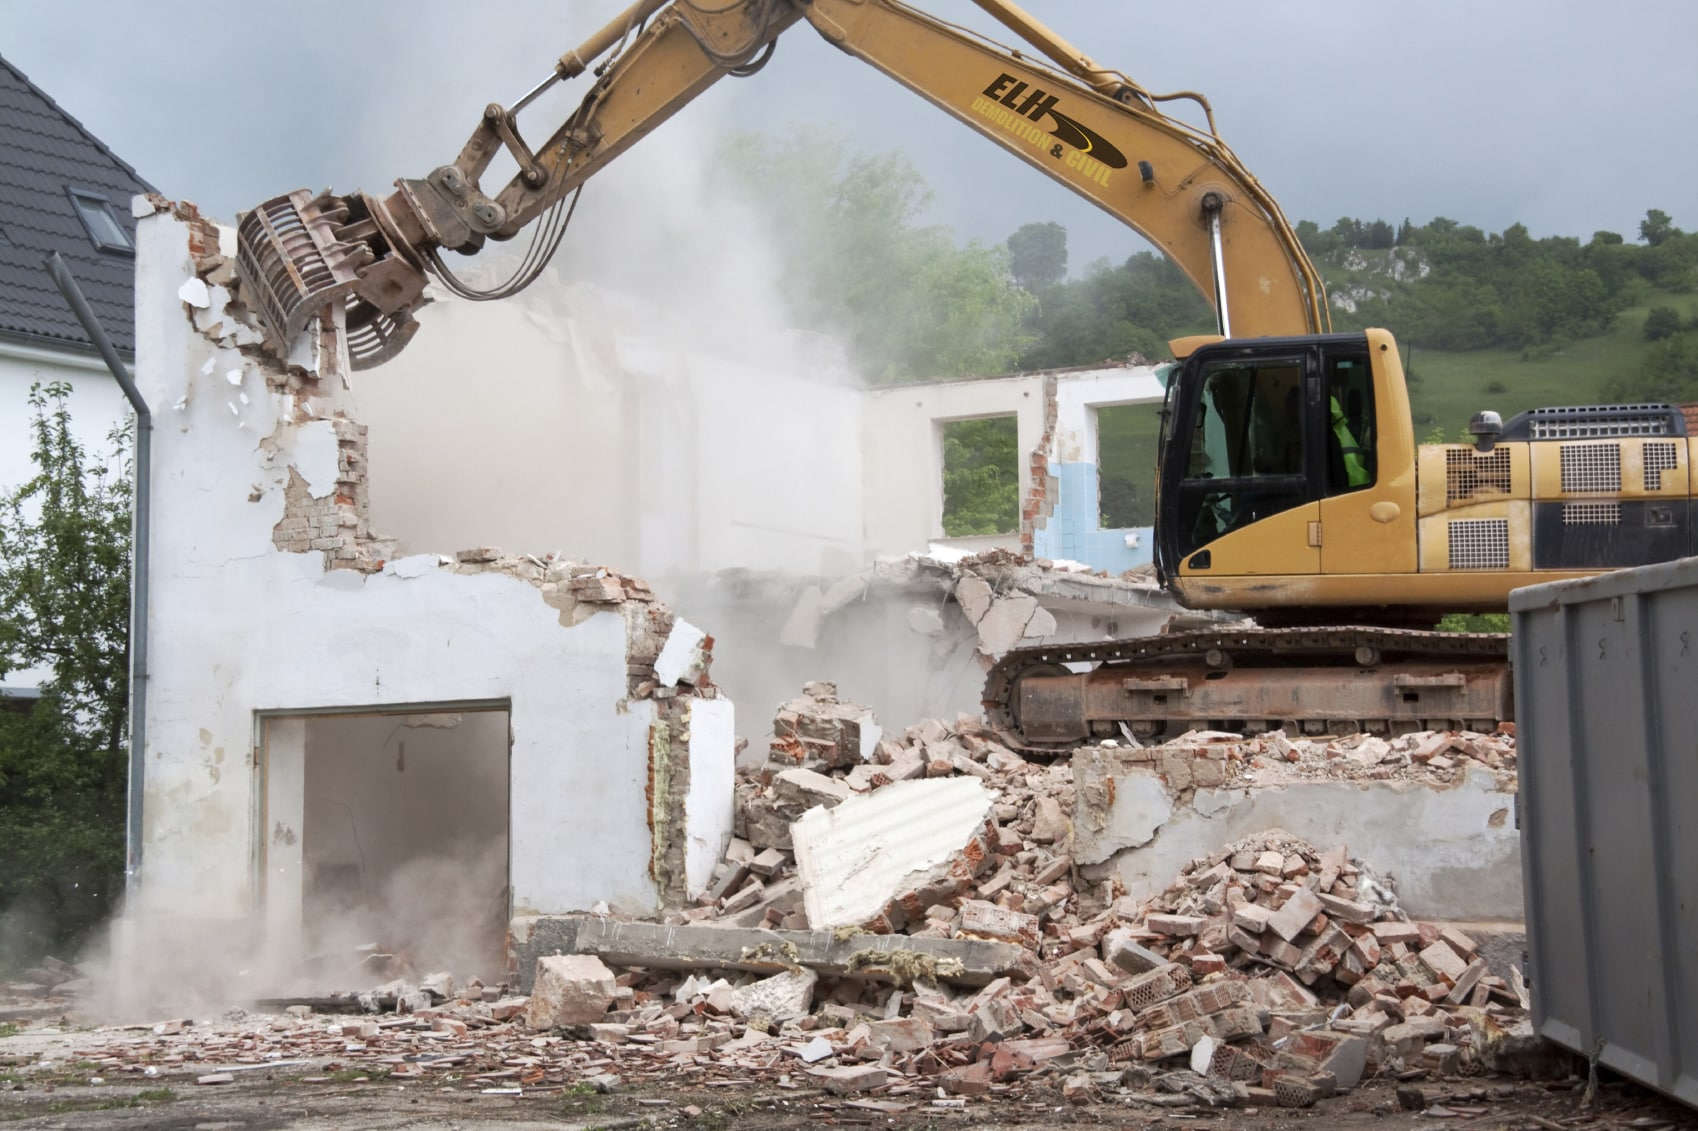 Photo from: ELH Demolition & Civil